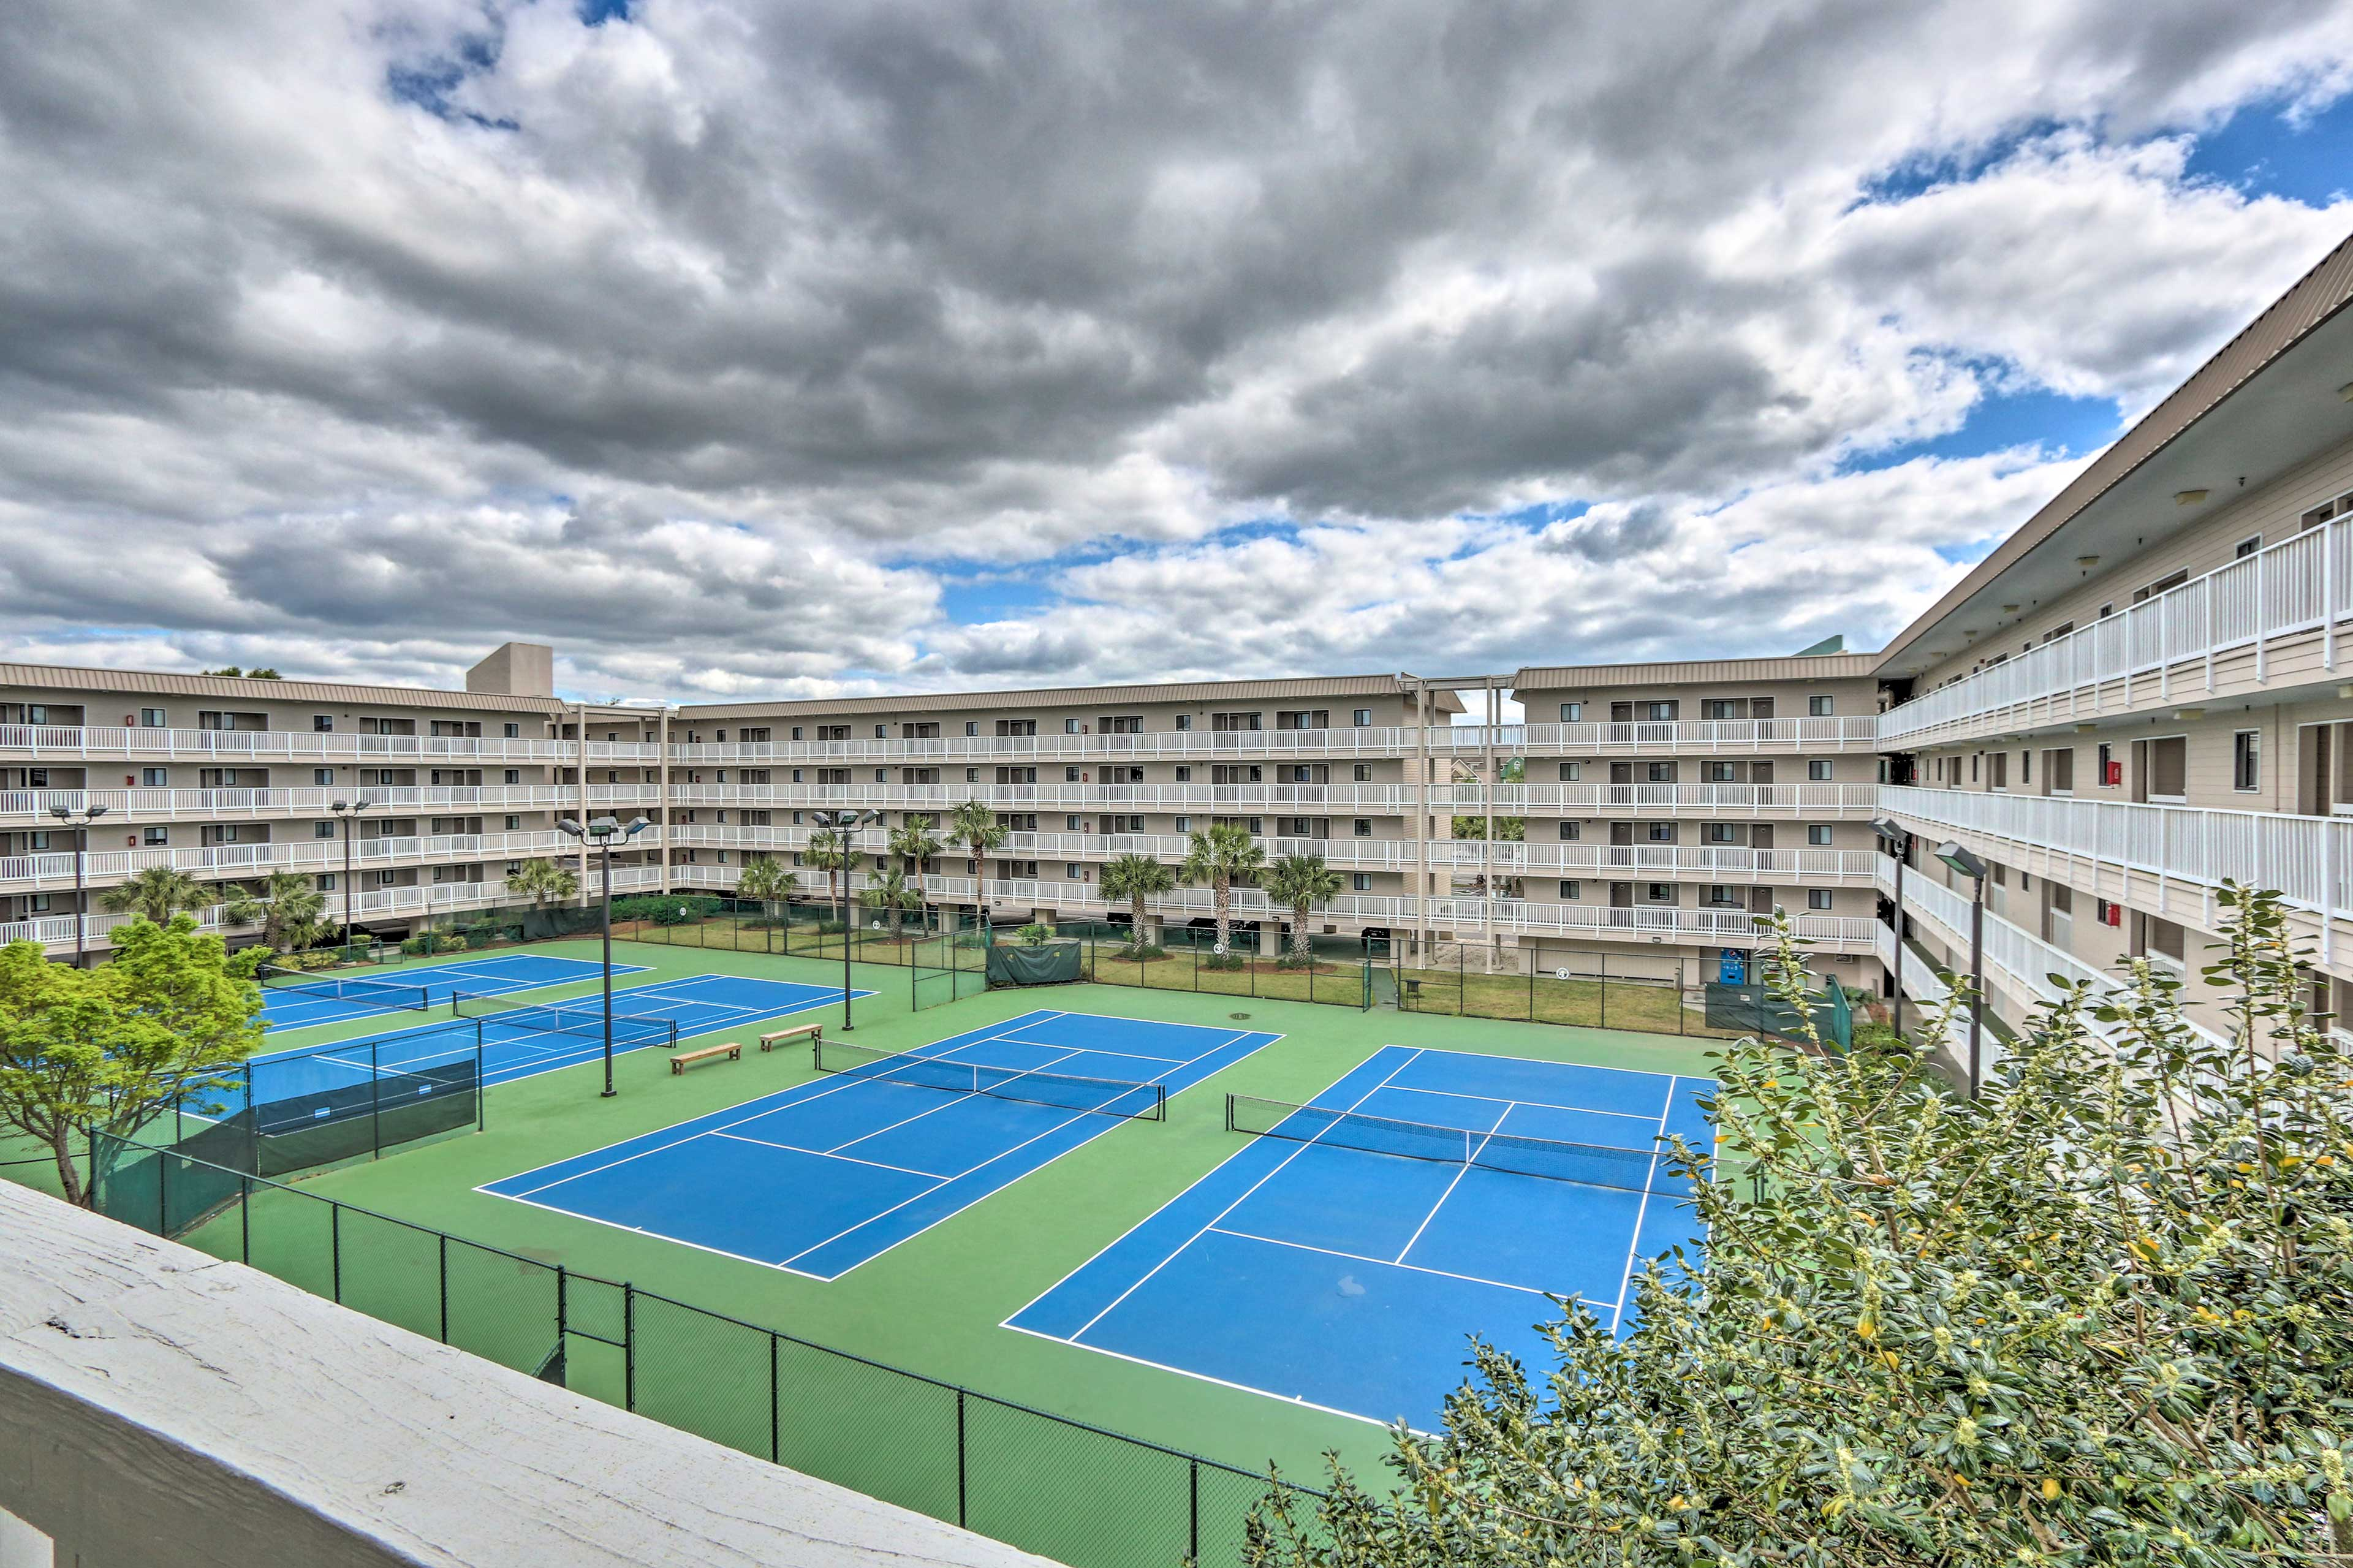 Compete with friends in a game of tennis on one of the many courts!